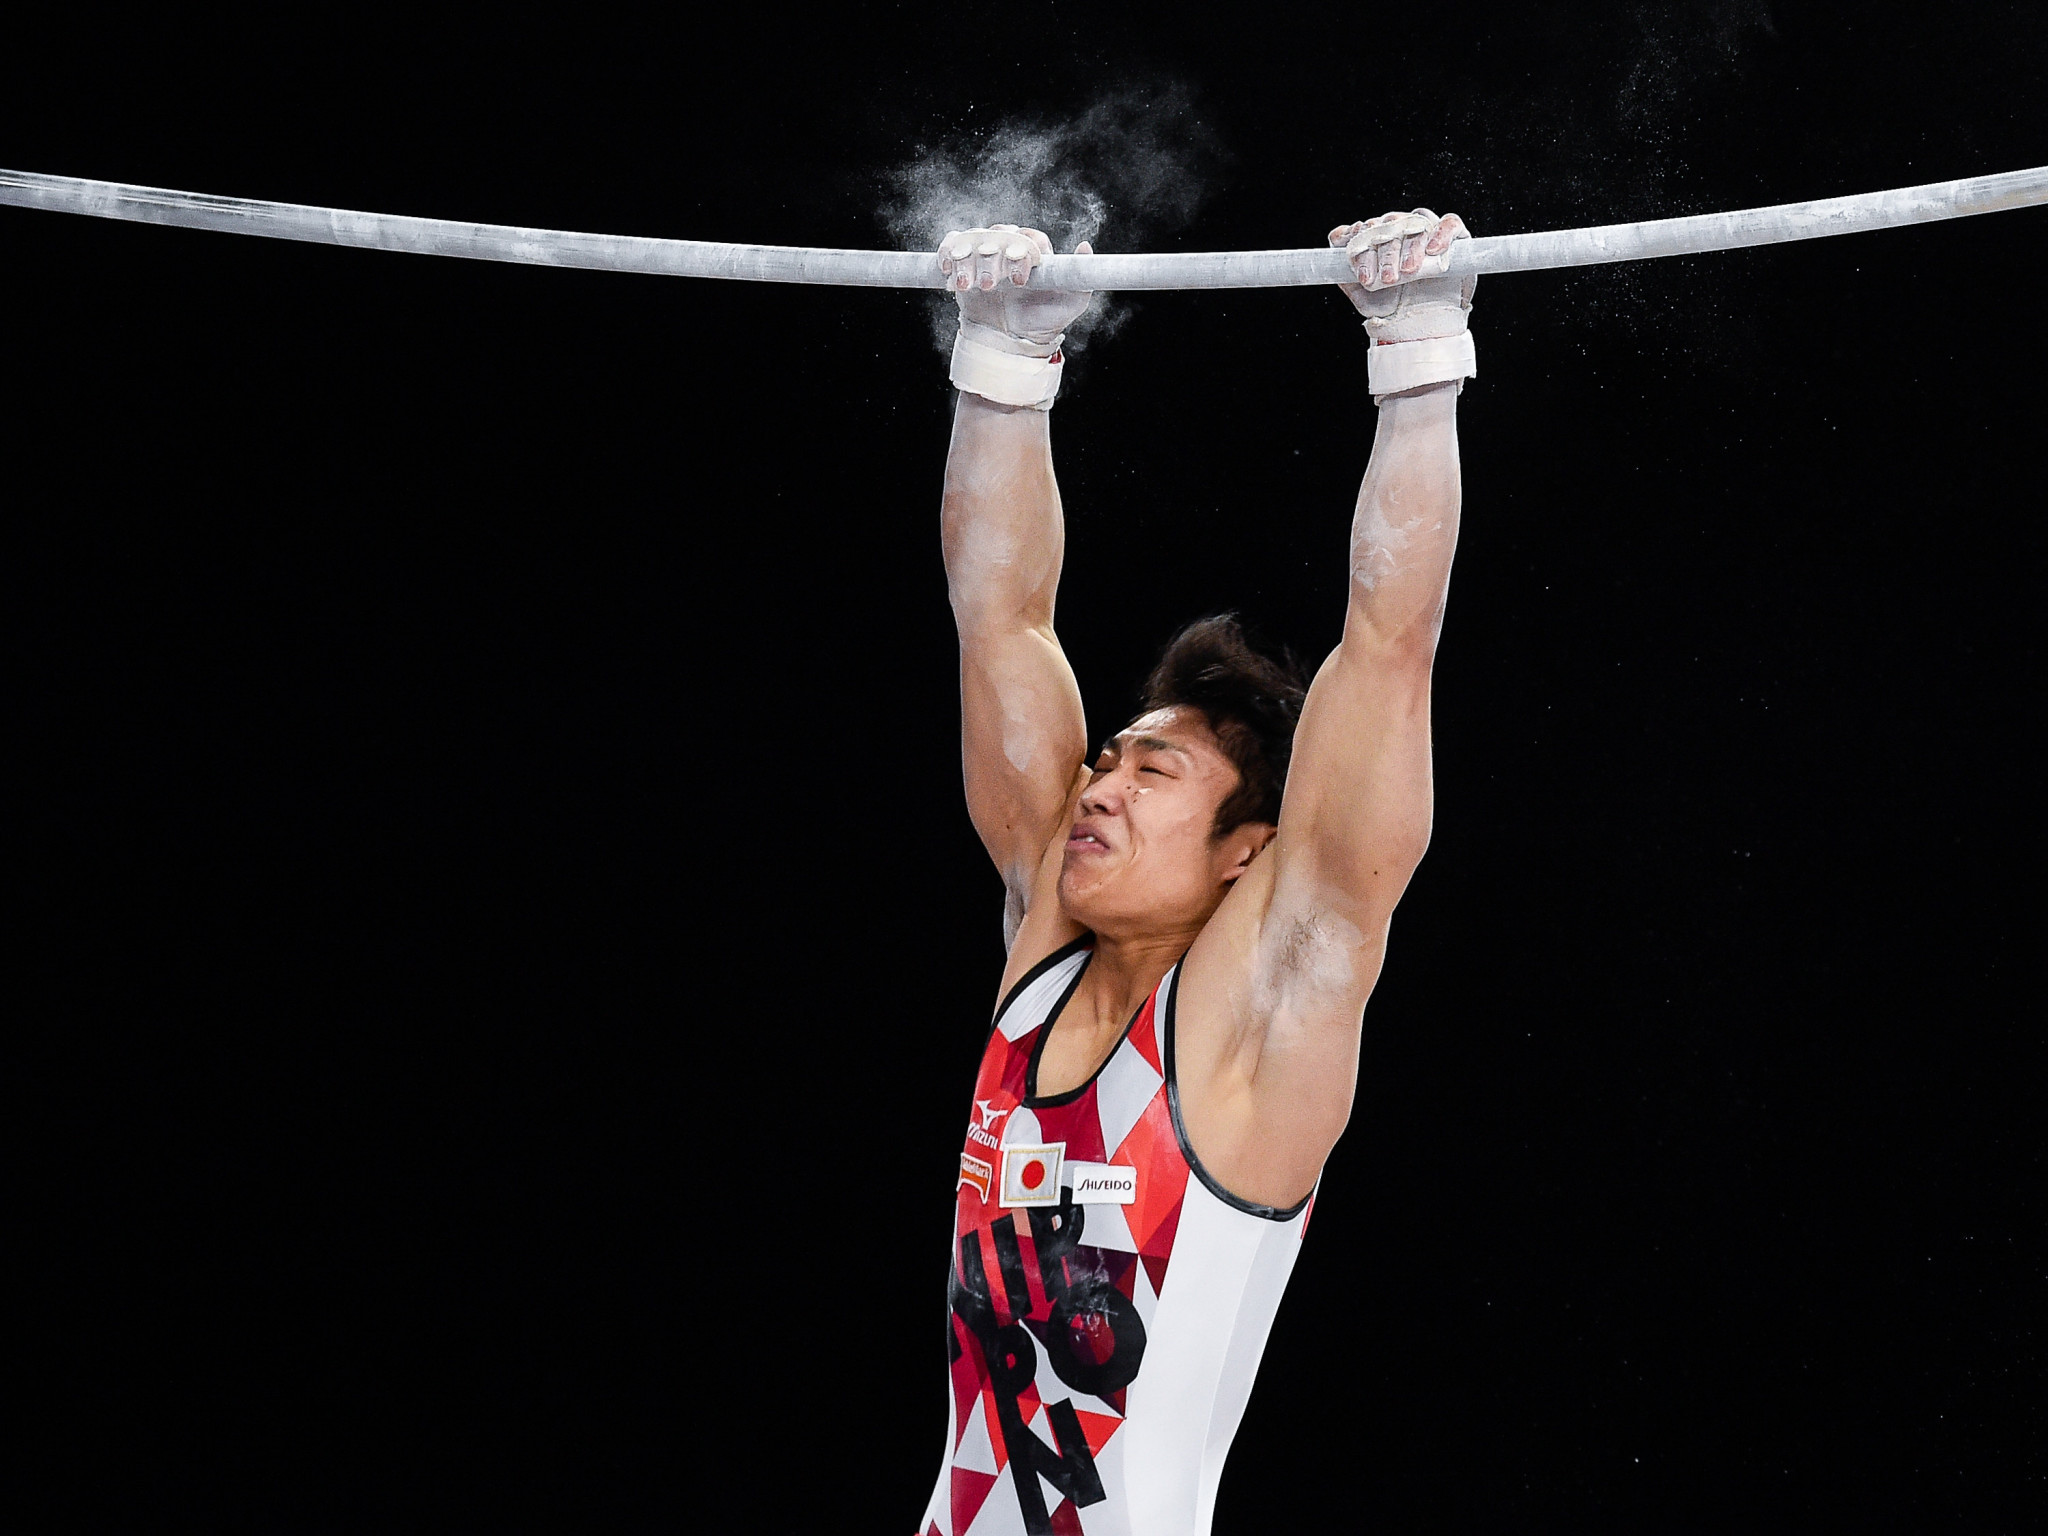 Japan's Hidetaka Miyachi triumphed in the men's horizontal bar event ©Getty Images